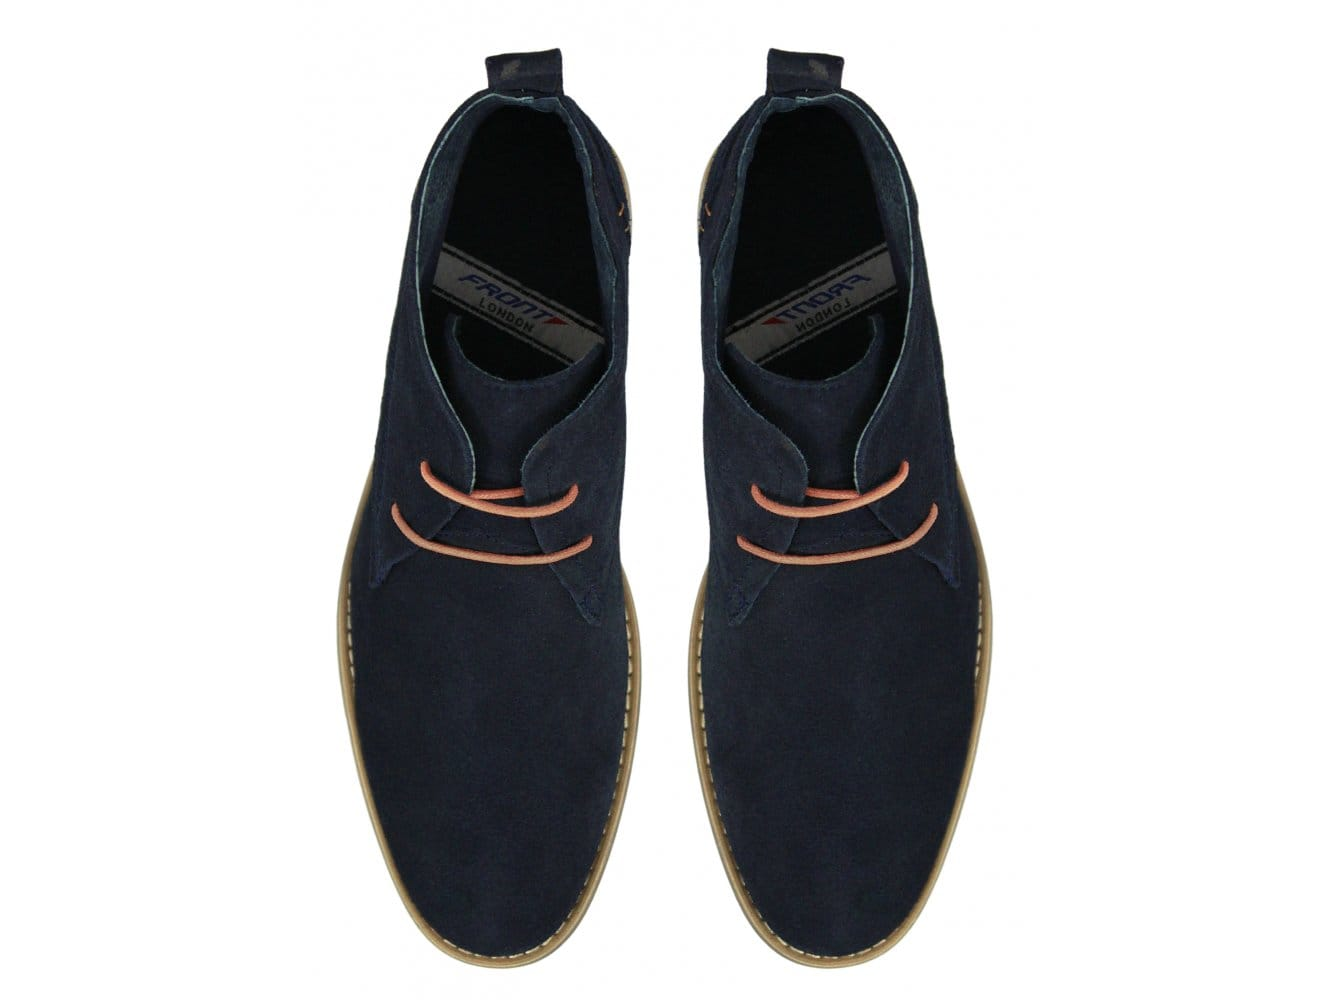 Front ROSCOE Mens Suede Leather Lace-Up Casual Desert Boots Sand/Navy Blue/Grey